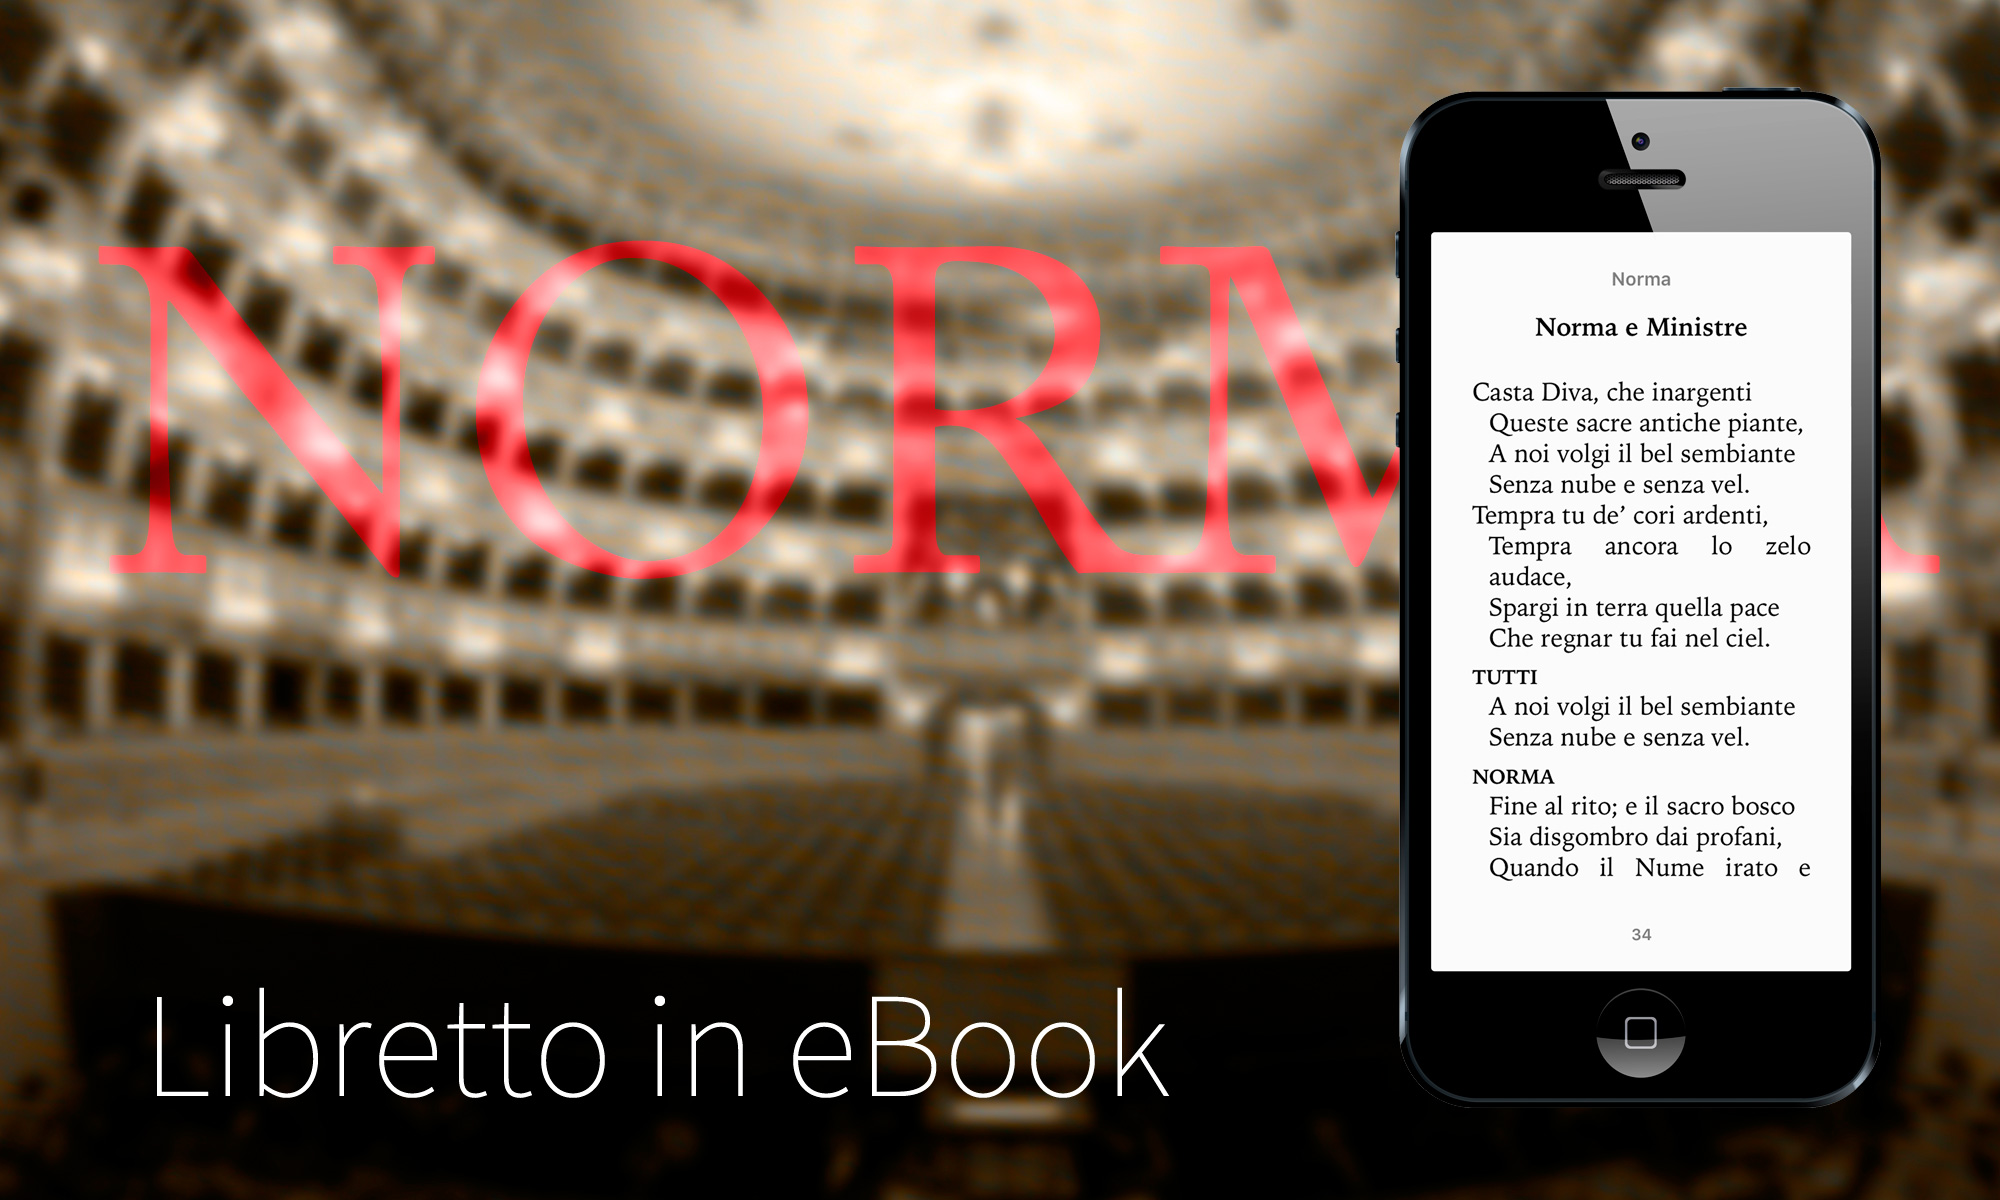 Libretto Norma in eBook